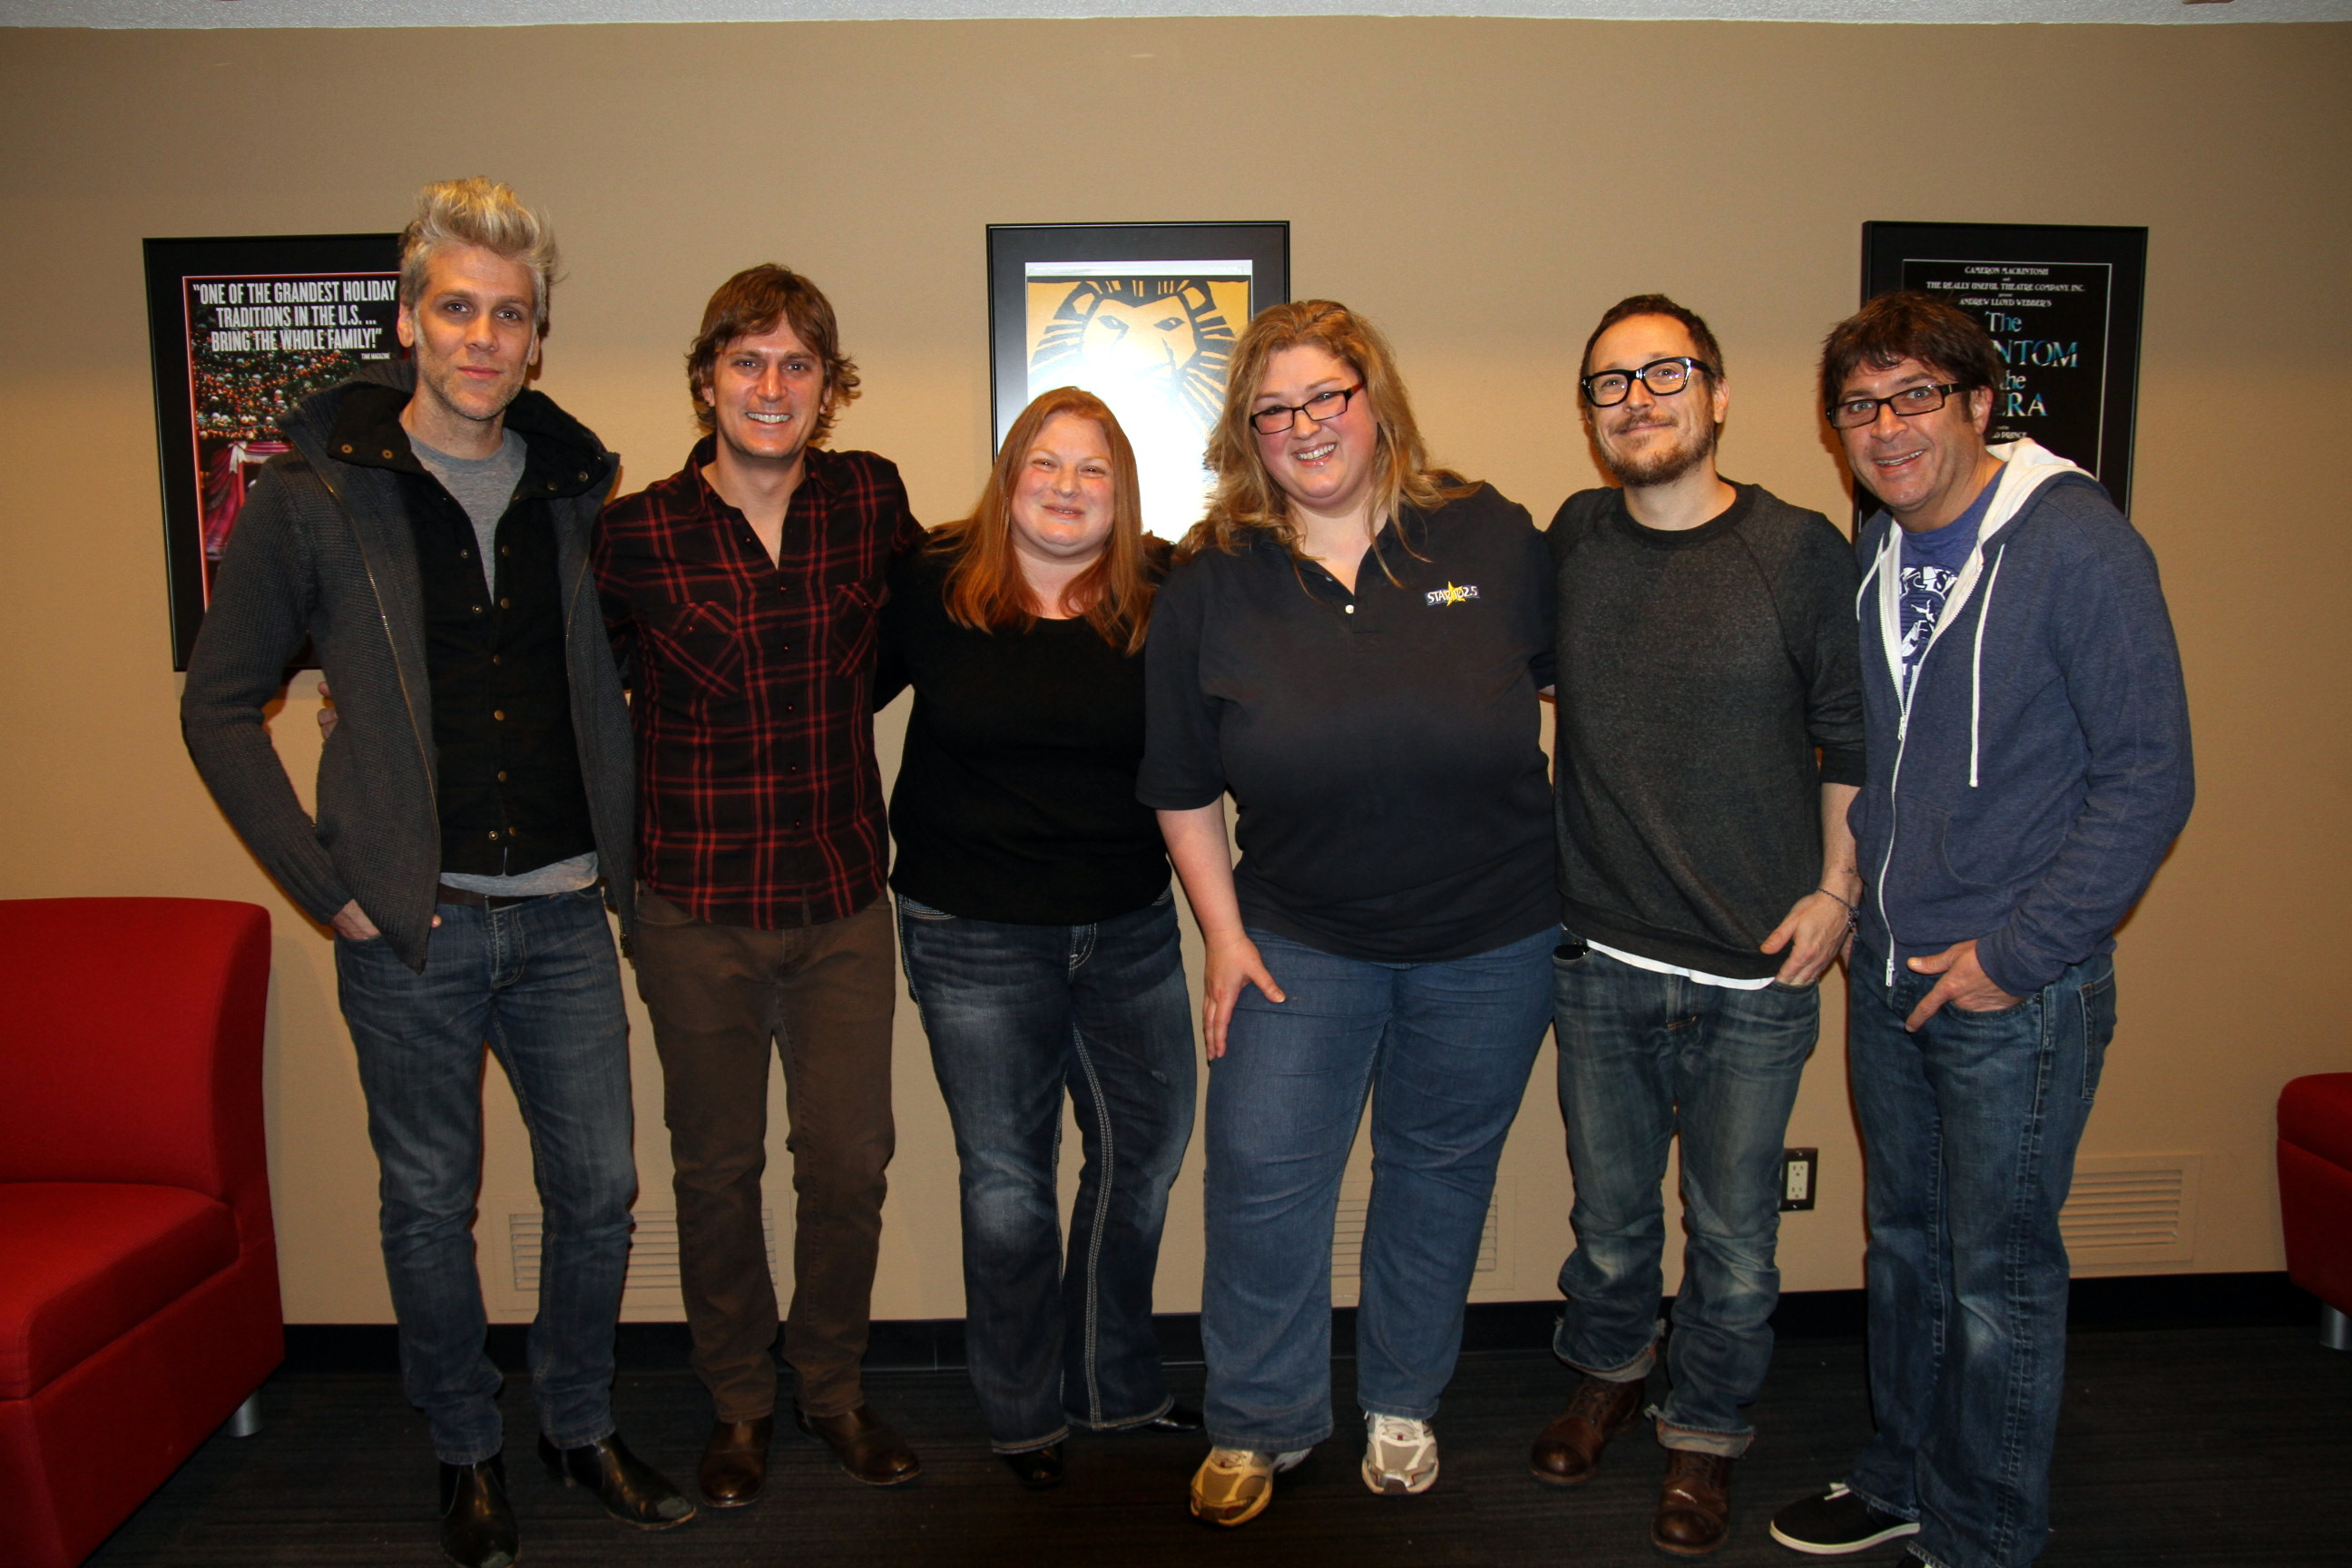 With Matchbox 20